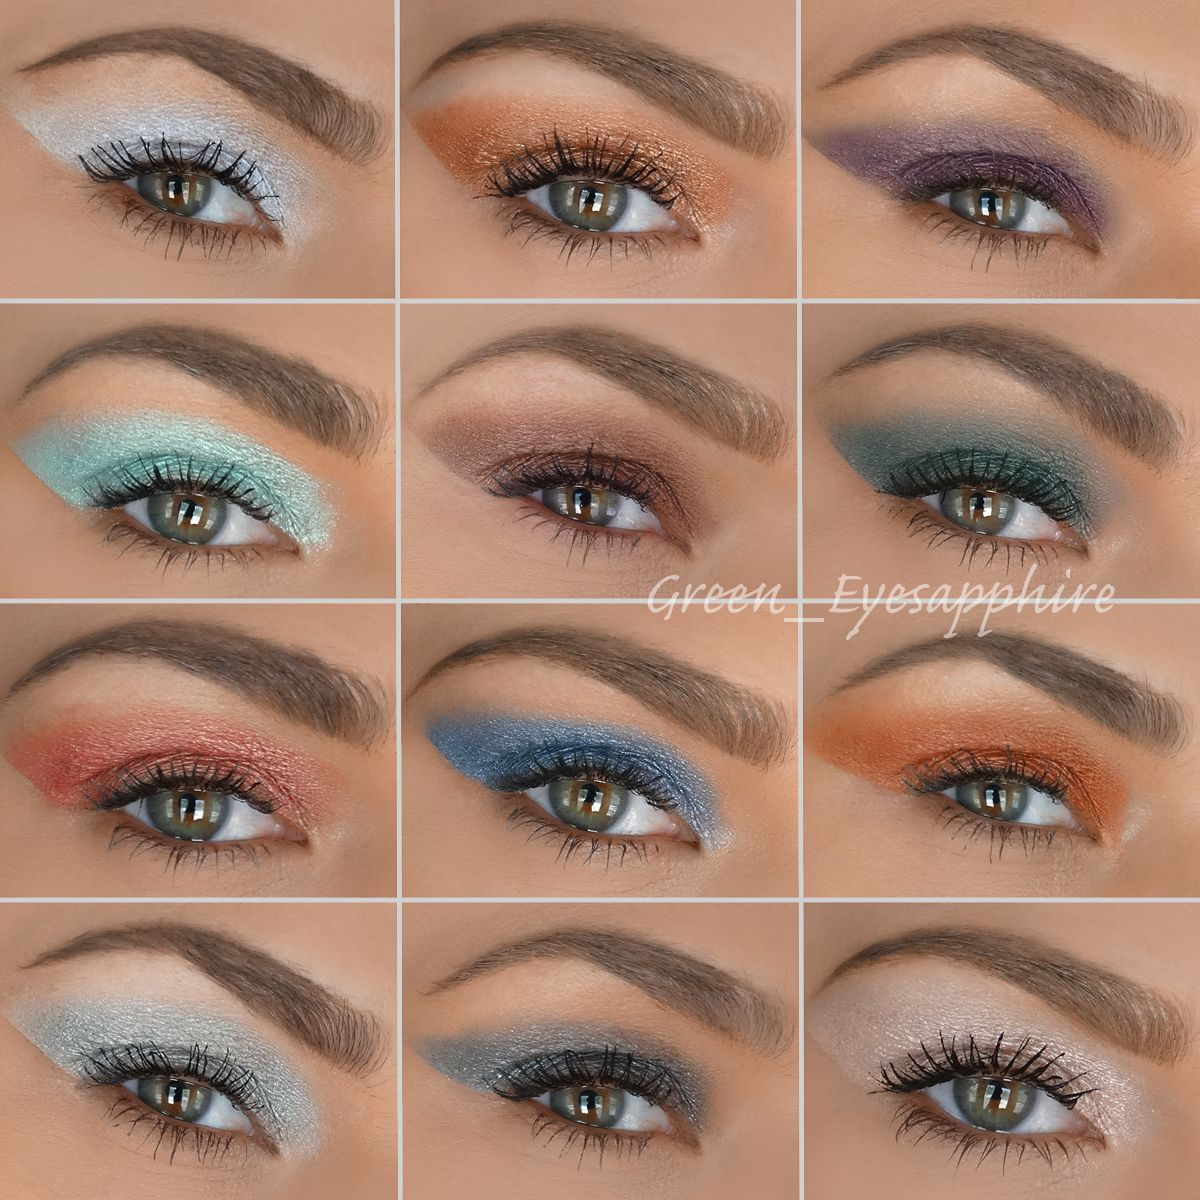 NYX Prismatic Eyeshadows Swatches Left to Right from the